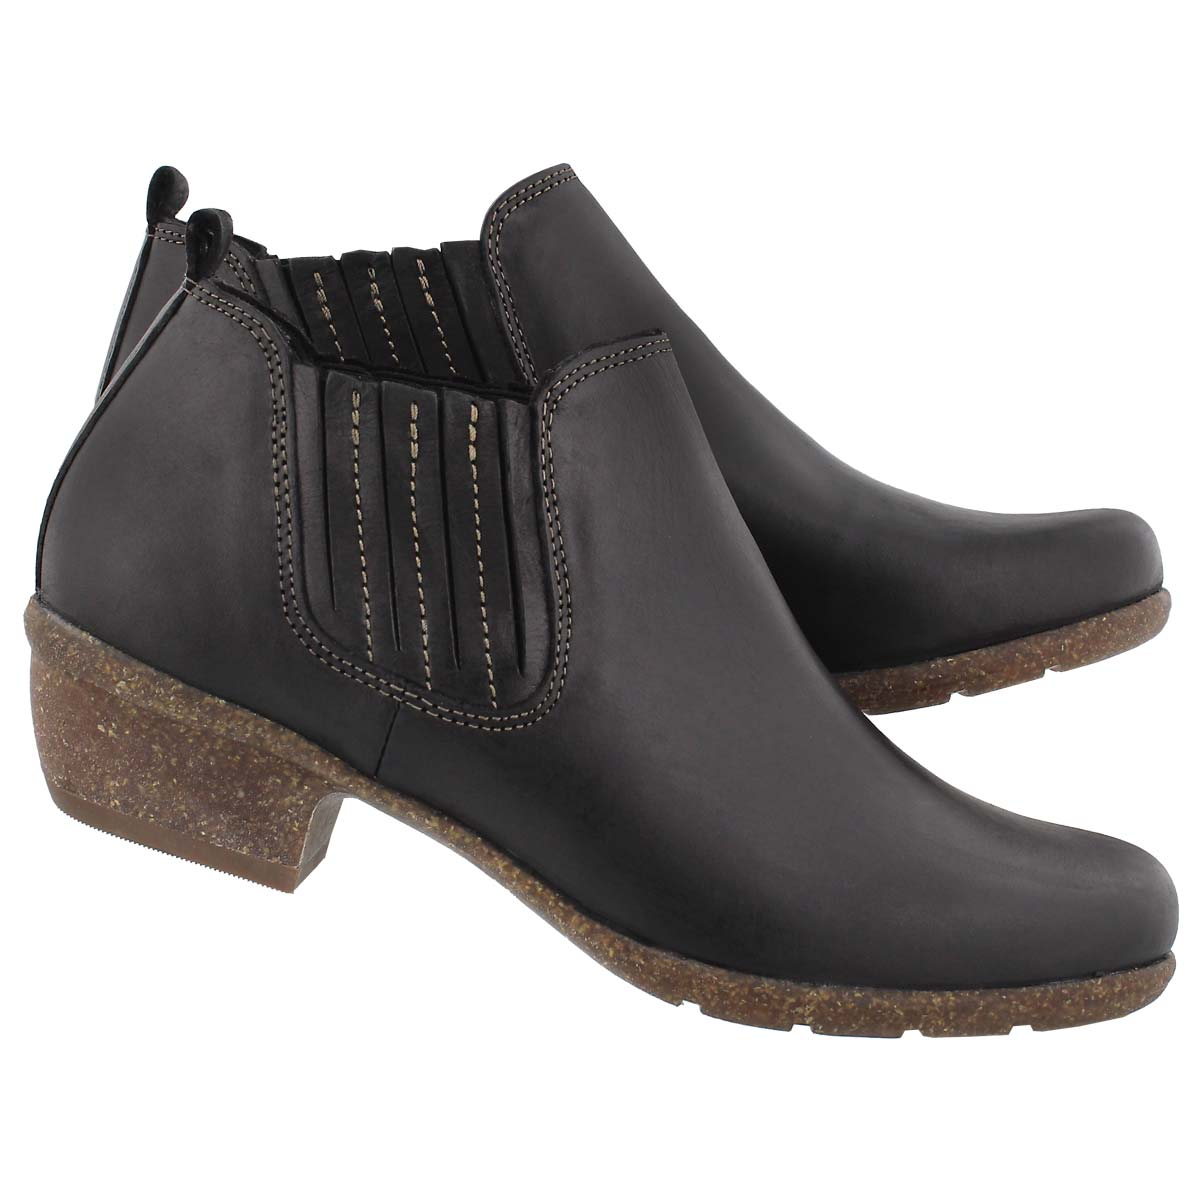 Lds Wilrose Jade blk slip on casual boot